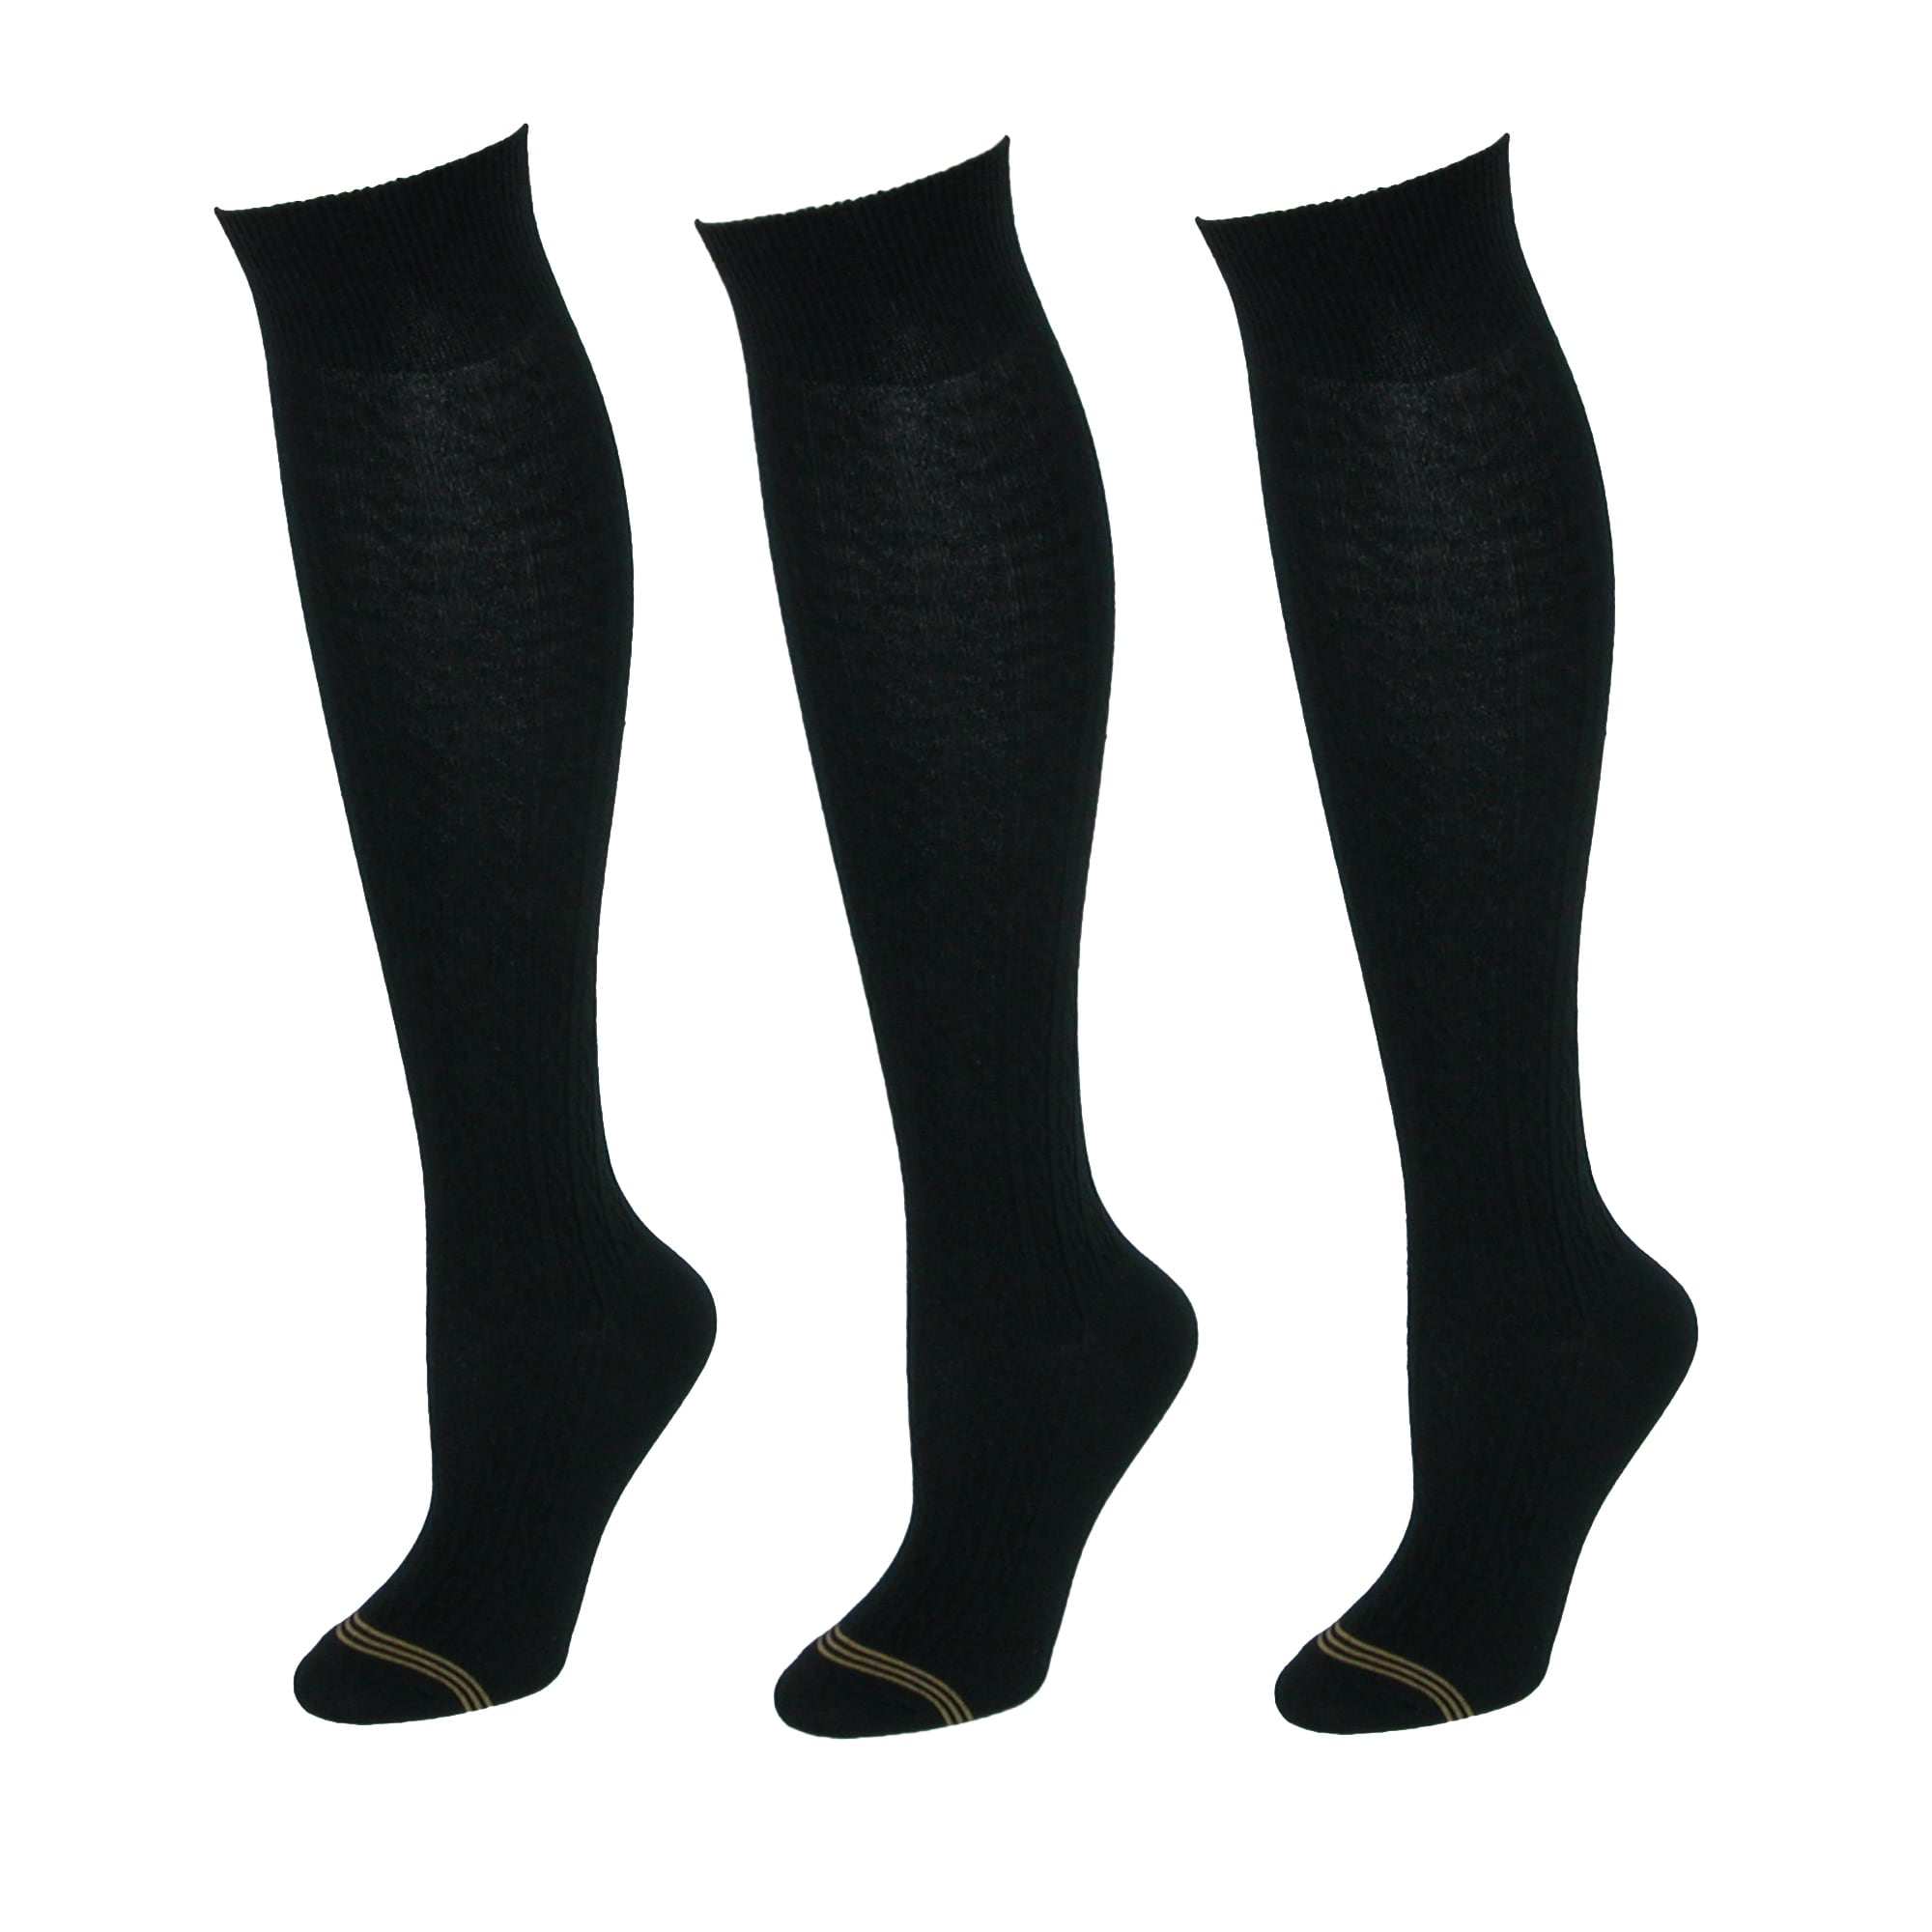 1a41e675684 Shop Gold Toe Girls  Cable Knit Knee High Uniform Socks (Pack of 3) - Free  Shipping On Orders Over  45 - Overstock - 14278778